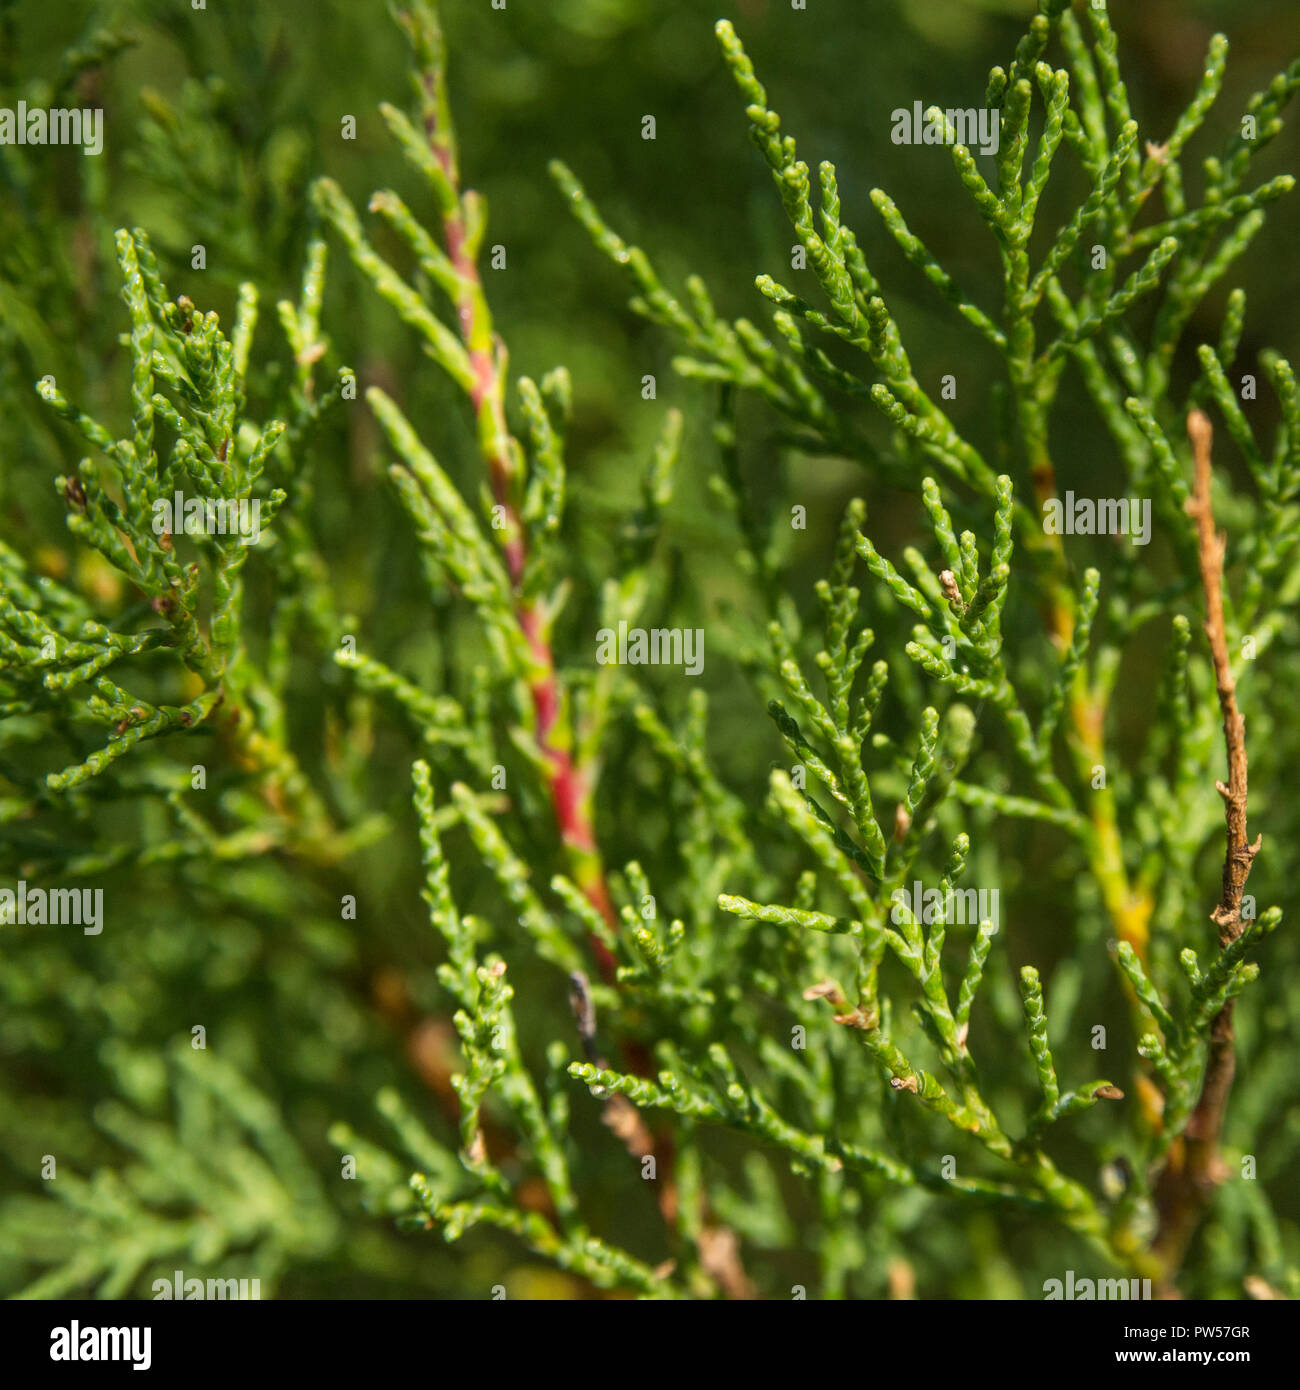 Tamarisk (almost certainly  Tamarix gallica) shrub growing in Newquay, Cornwall. Parts of Tamarisk used in herbal medicine. - Stock Image